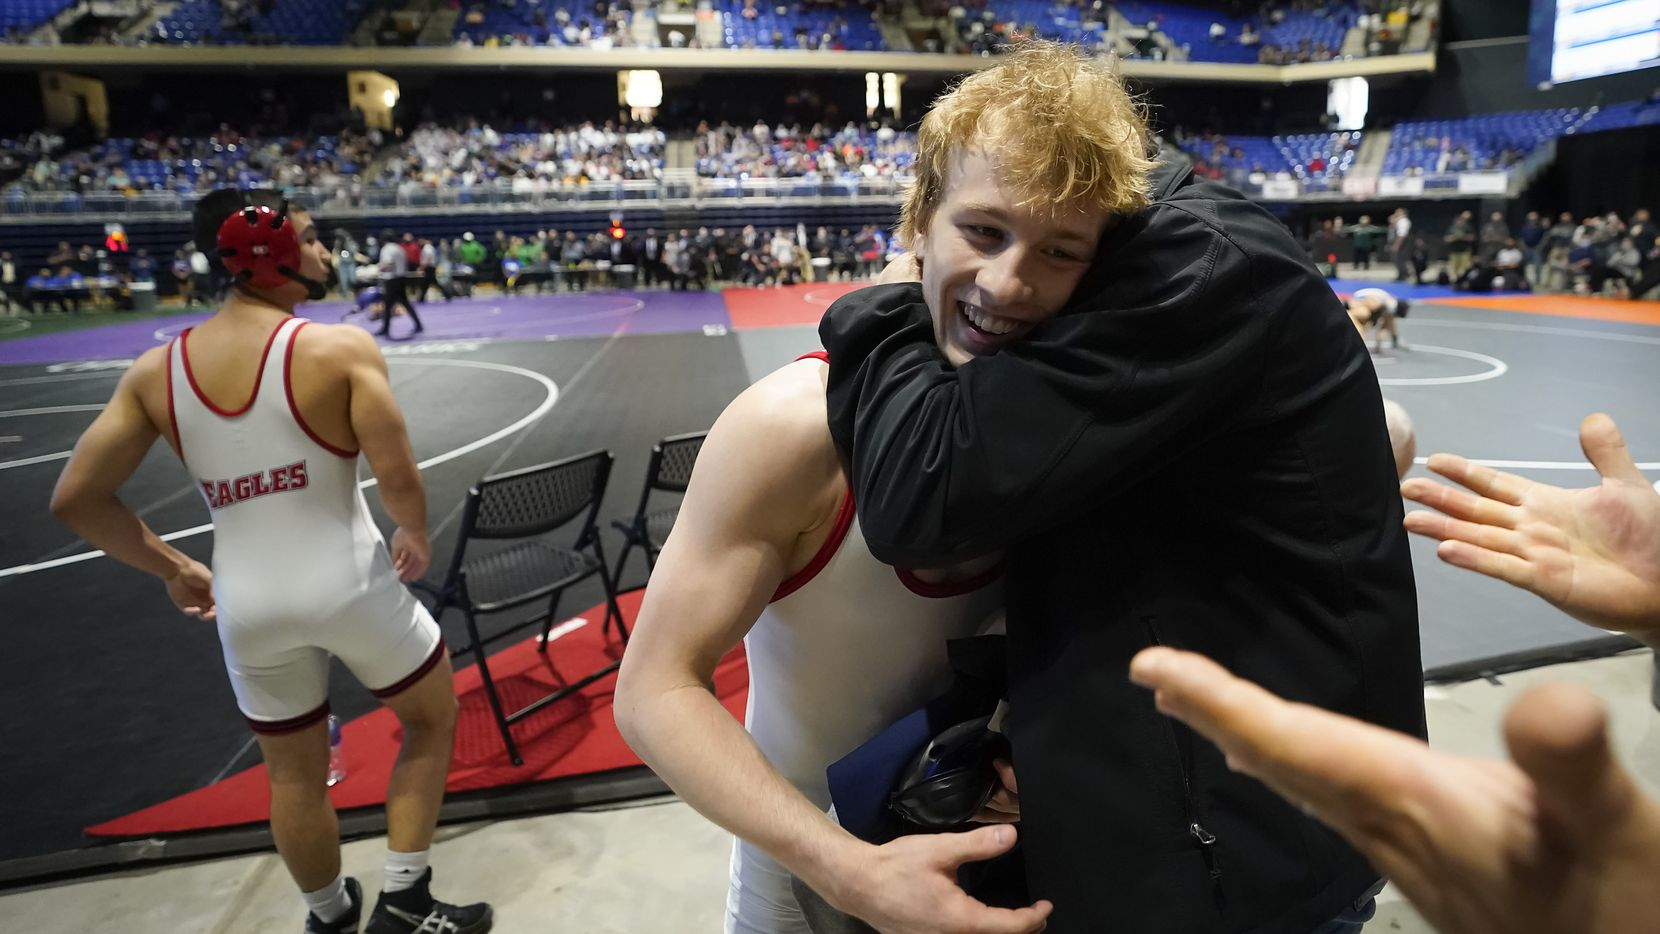 Braxton Brown of Allen celebrates after beating  Micah White of Humble Kingwood for the 6A boys 120-pound championship, Brown's fourth state title, during the UIL State Wrestling tournament at the Berry Center on Saturday, April 24, 2021, in Cypress, Texas.